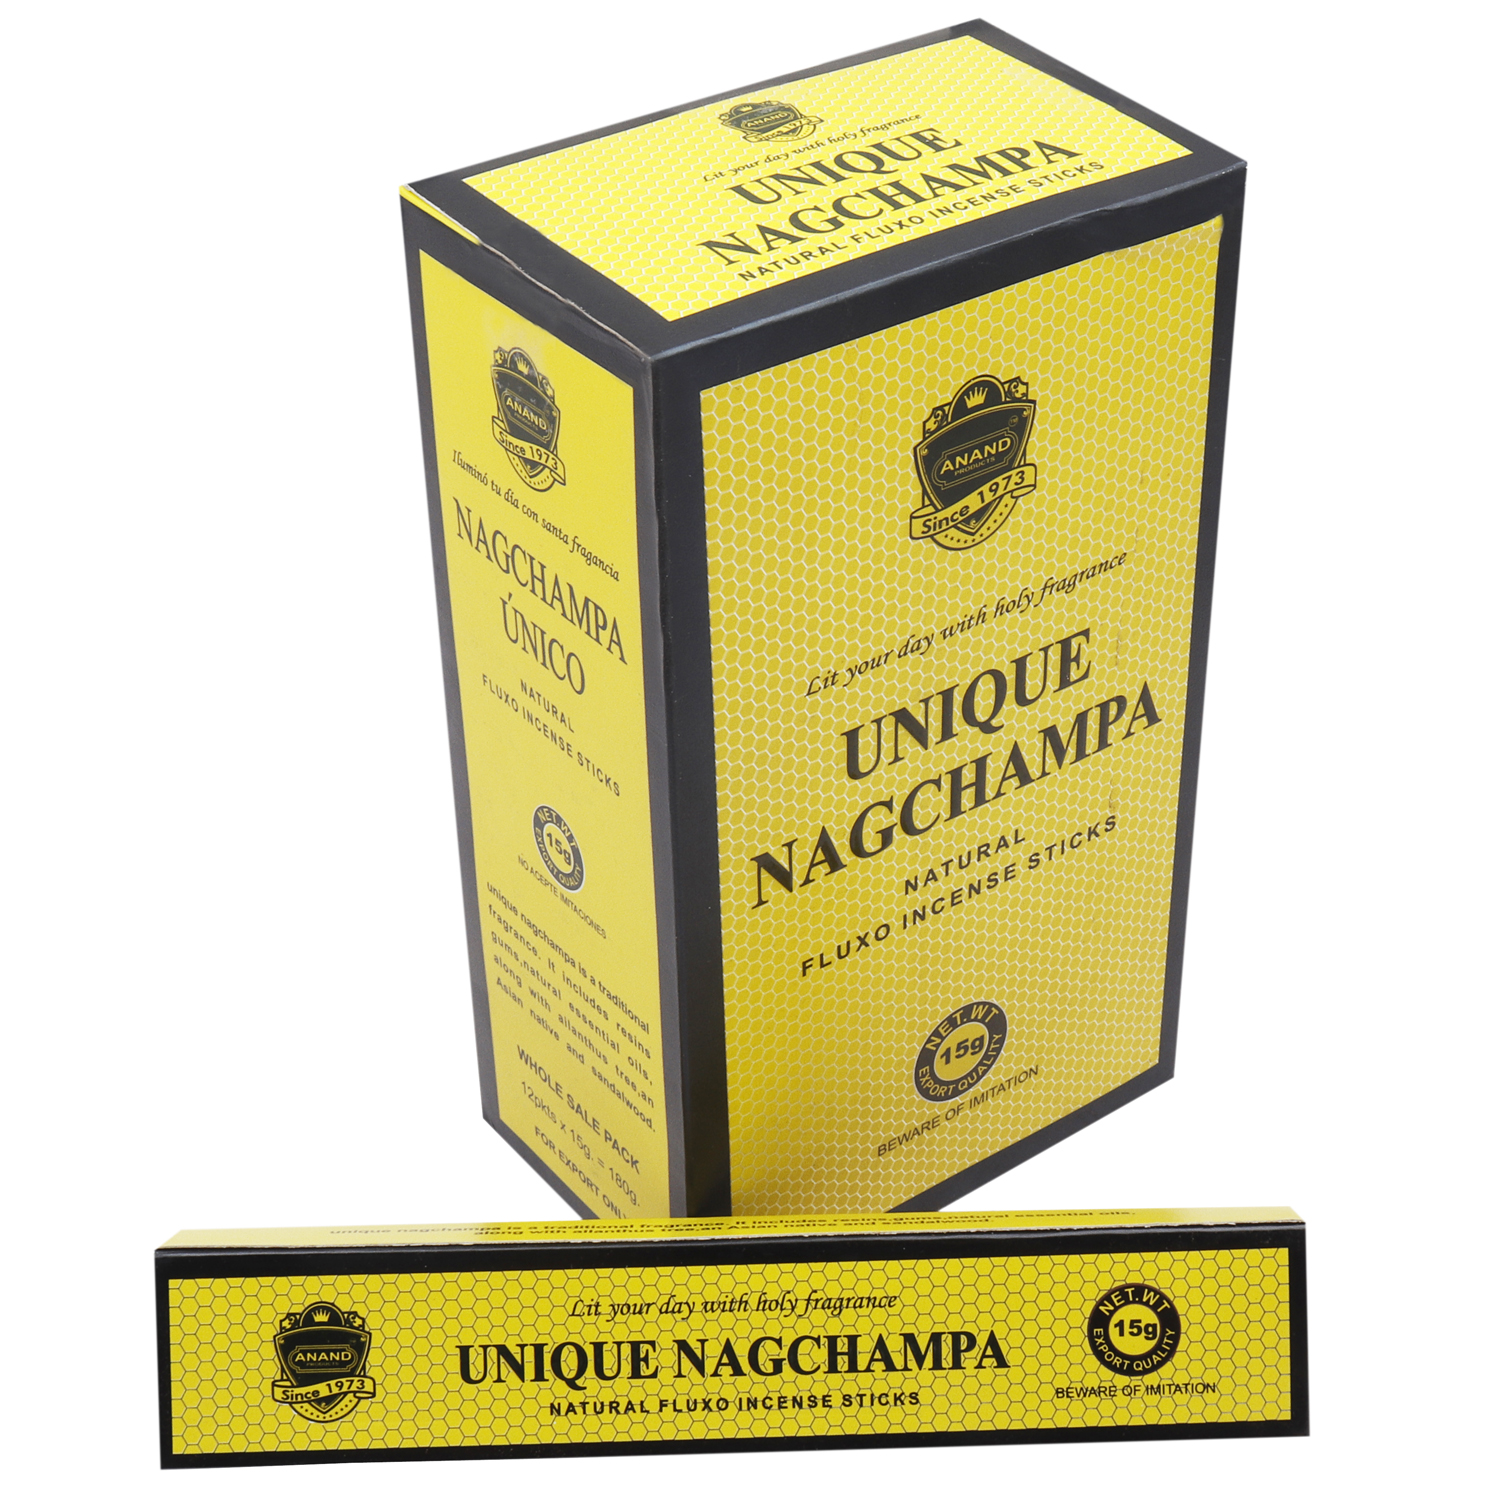 ANAND UNIQUE NAGCHAMPA 15 GM